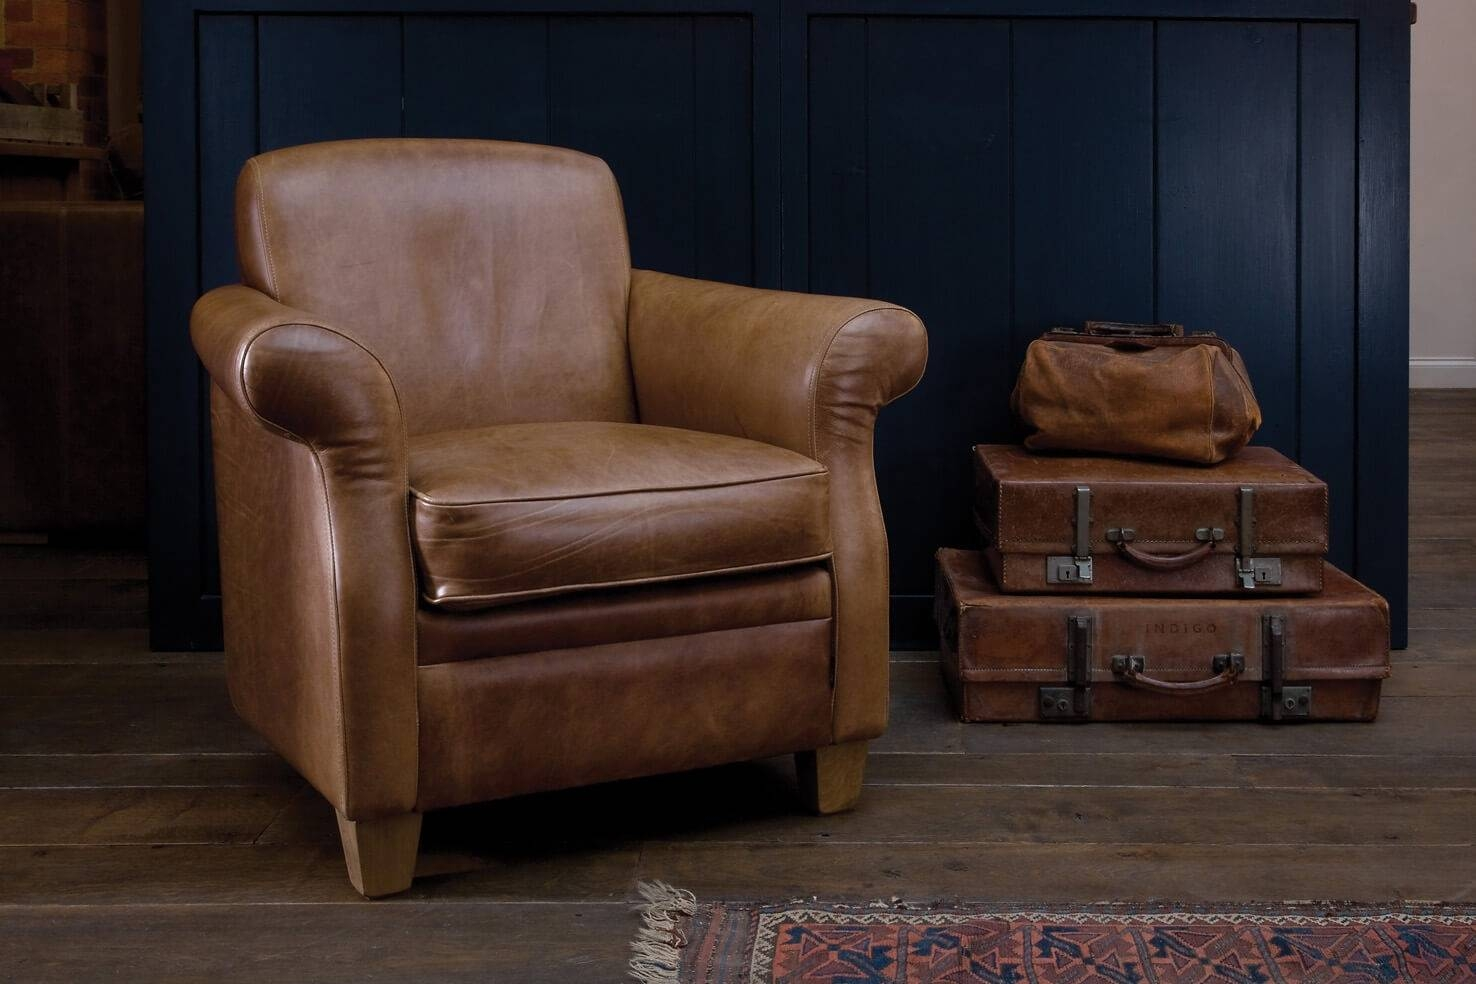 The Vintage Leather Armchairindigo Furniture regarding Vintage Leather Armchairs (Image 14 of 30)